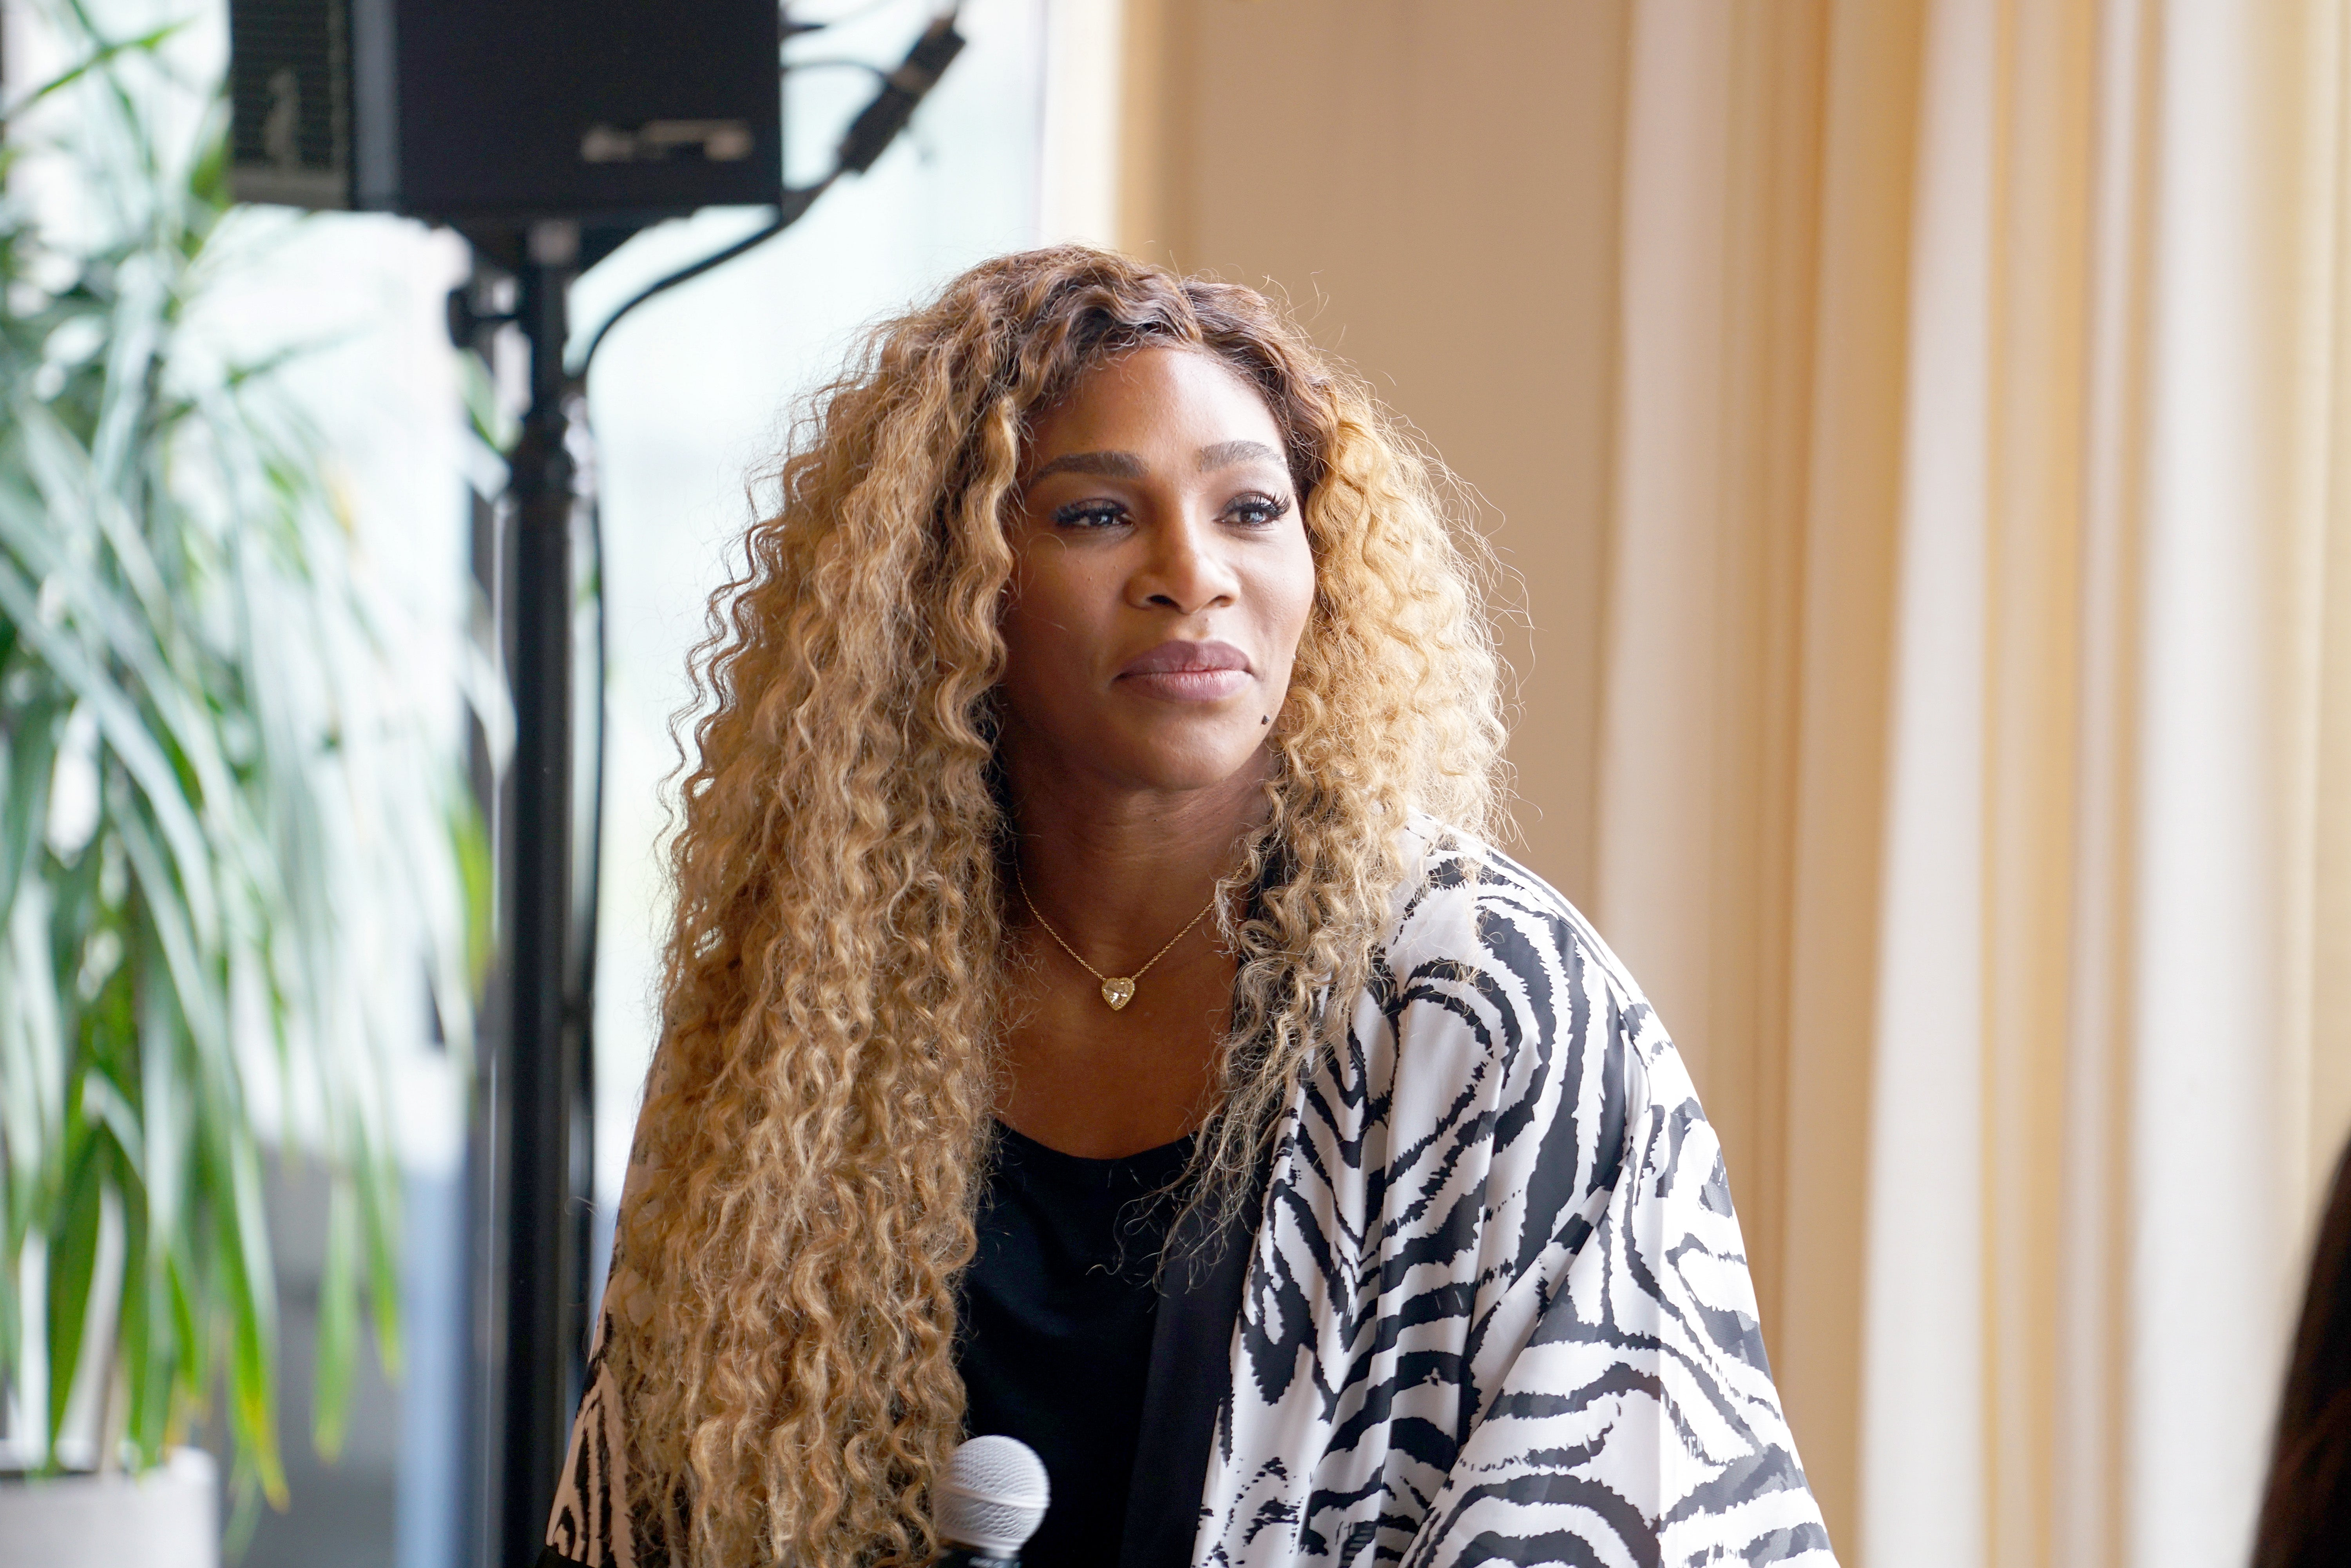 Serena Williams Partners With Allstate To Educate Women On Financial Abuse